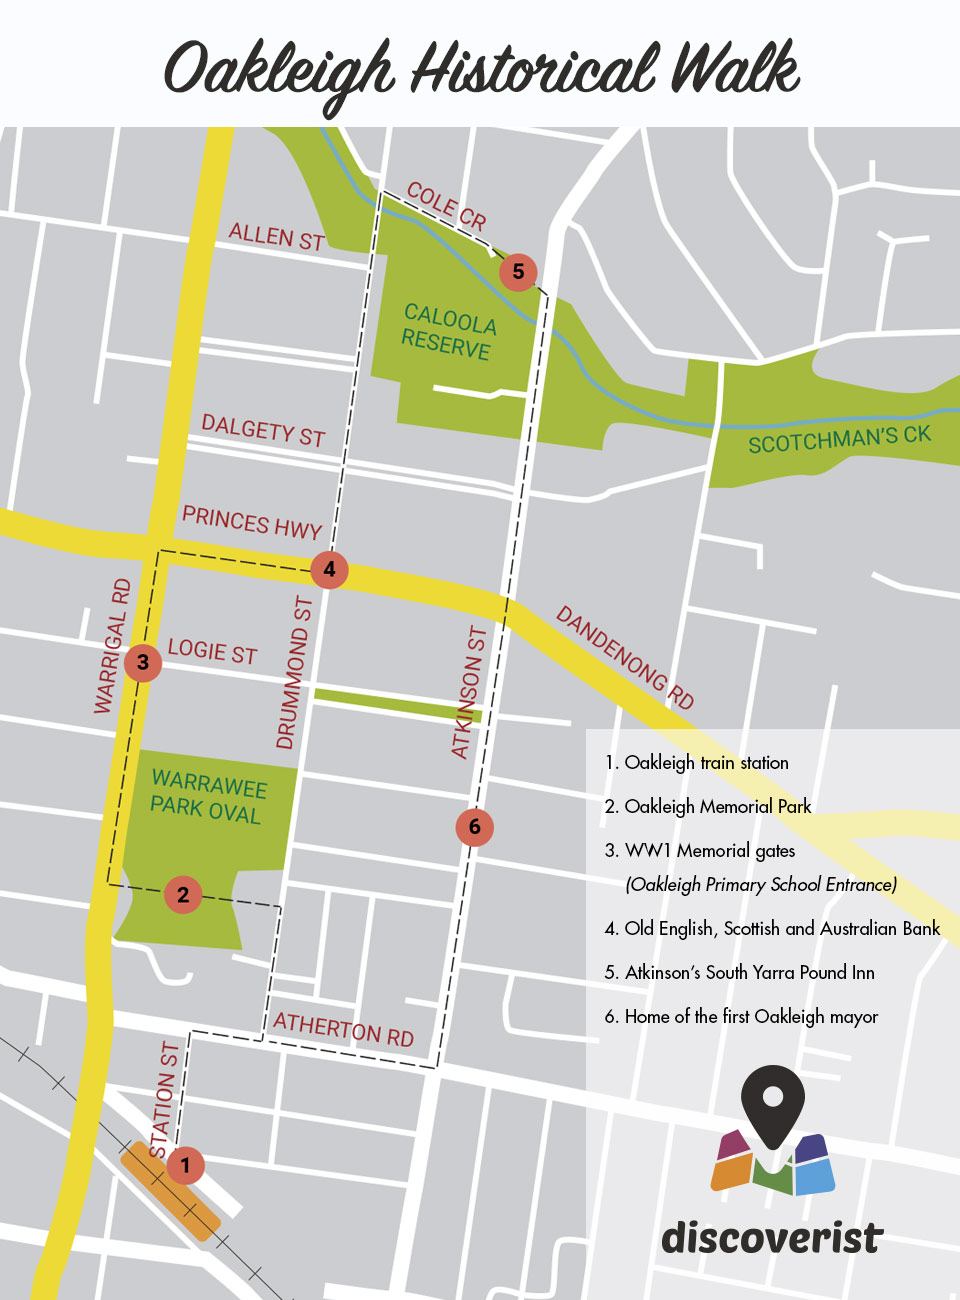 Oakleigh Historical Walk map - By Discoverist